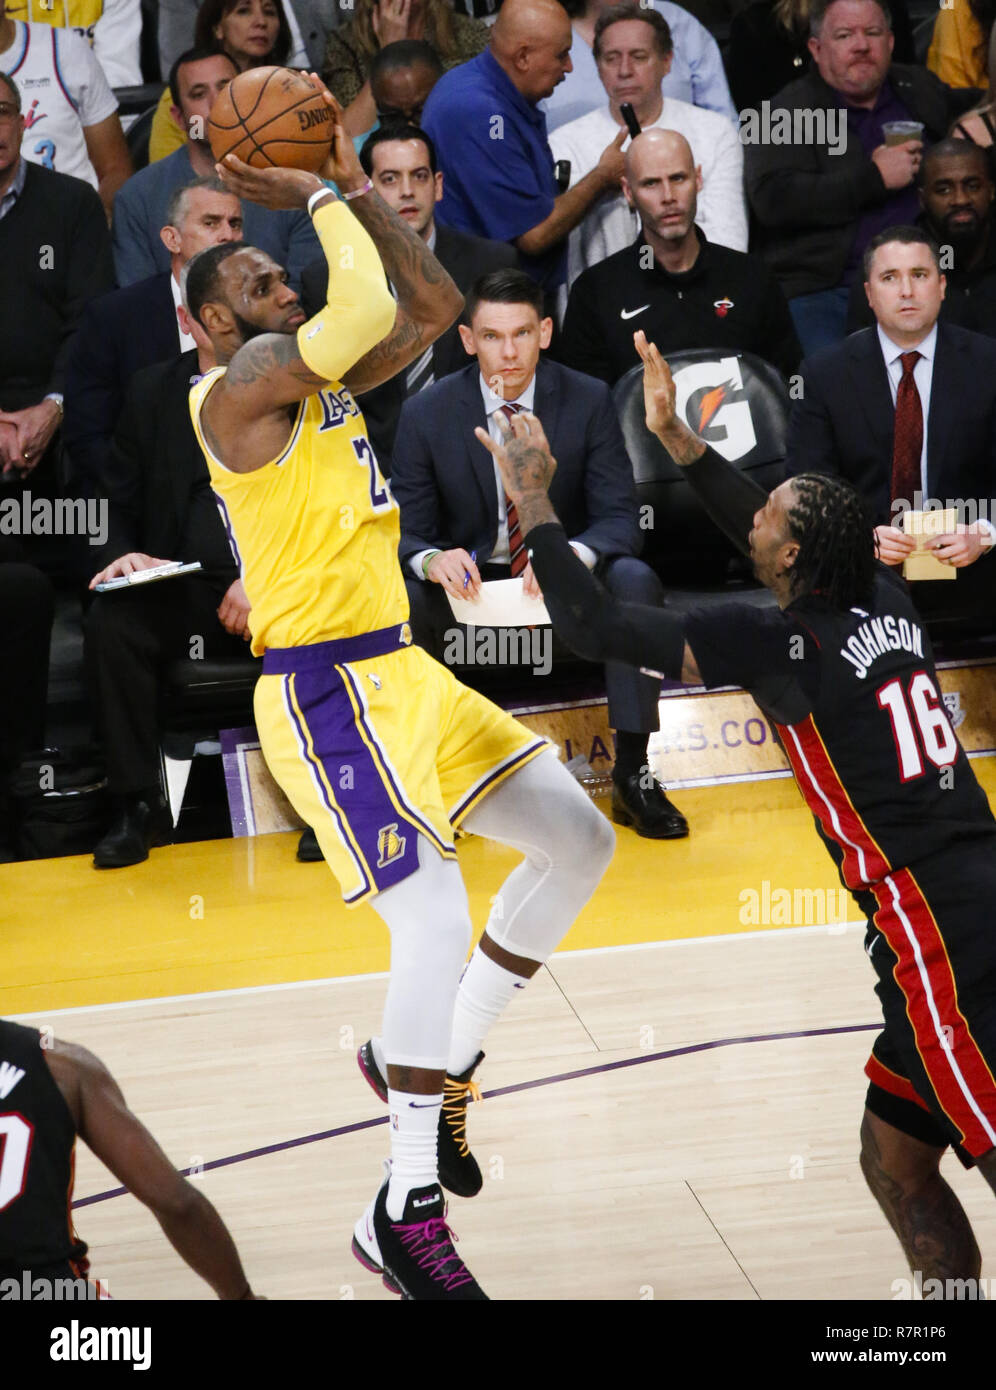 0b696622be0c Los Angeles Lakers  LeBron James (23) shoots against Miami Heat s James  Johnson (16) in an NBA basketball game between Los Angeles Lakers and Miami  Heat ...